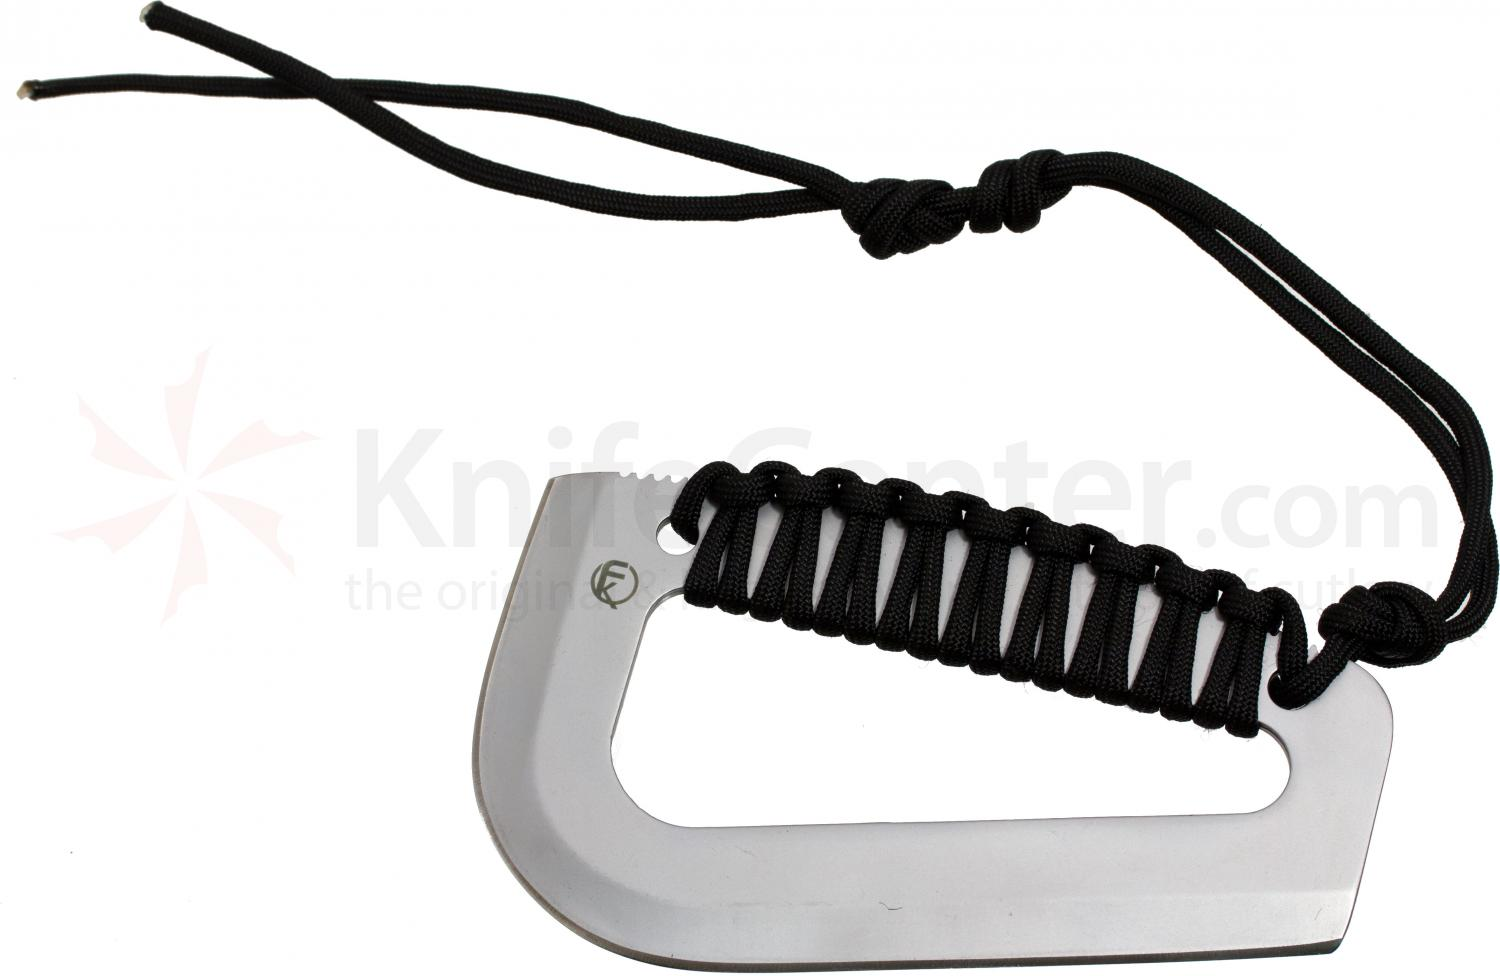 Fremont Knives Farson Blade Survival Tool, 6 inch Overall, Black Paracord Handle